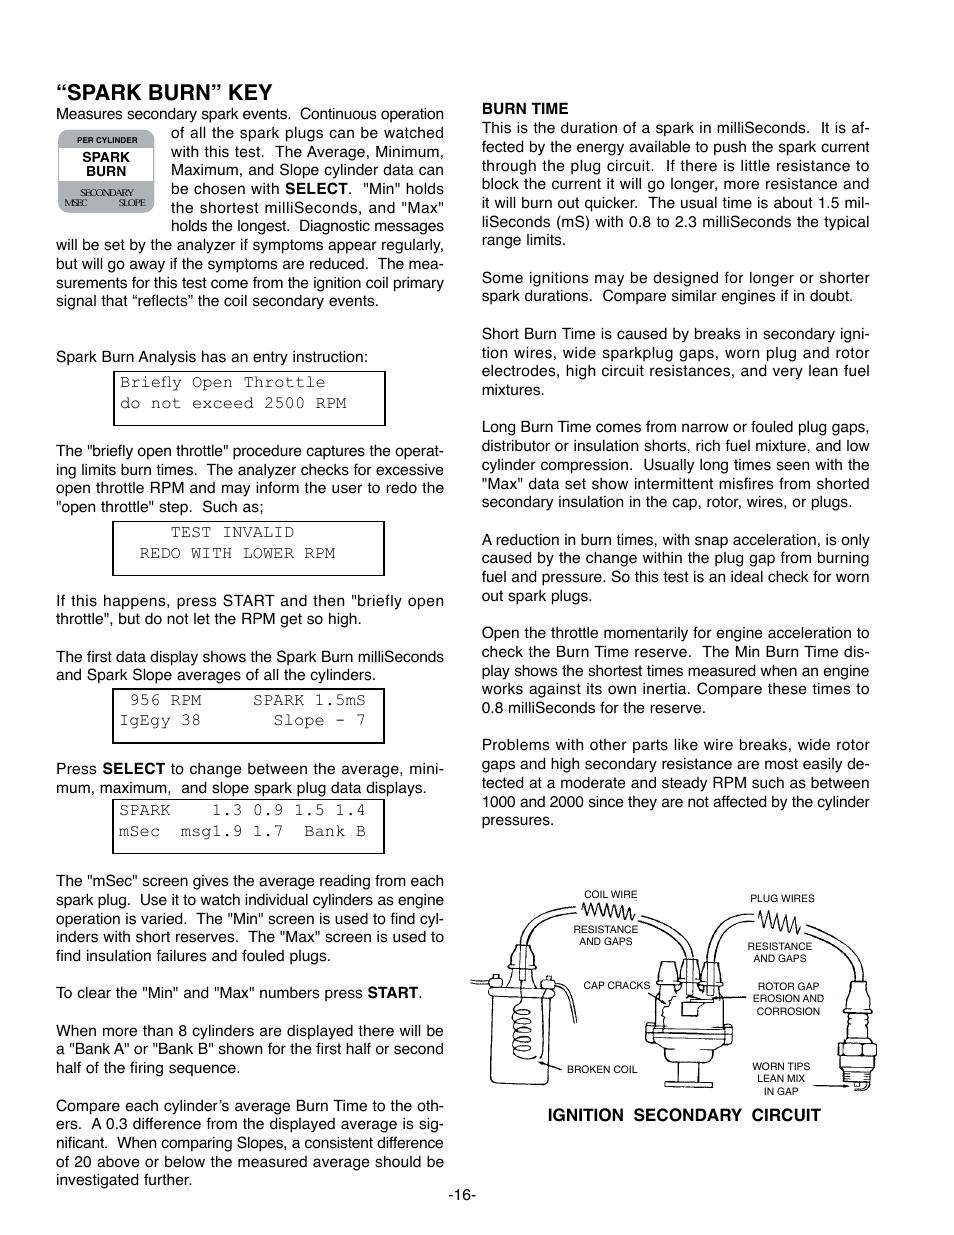 "Spark burn"" key, Start 